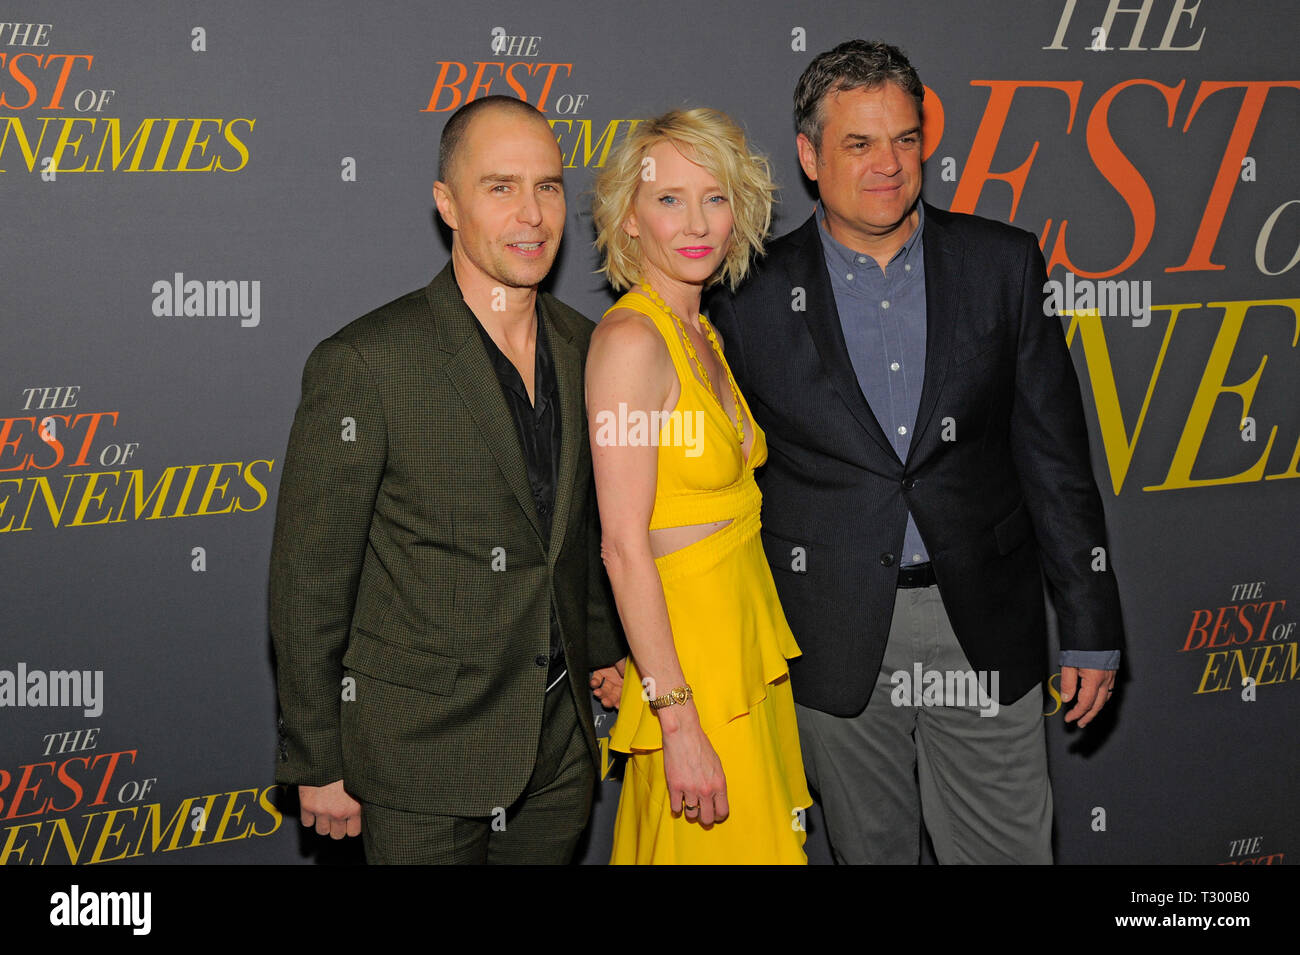 NEW YORK, NY - APRIL 04: Sam Rockwell, Anne Heche and Robin Bissell attend 'The Best Of Enemies' New York Premiere at AMC Loews Lincoln Square on Apri - Stock Image